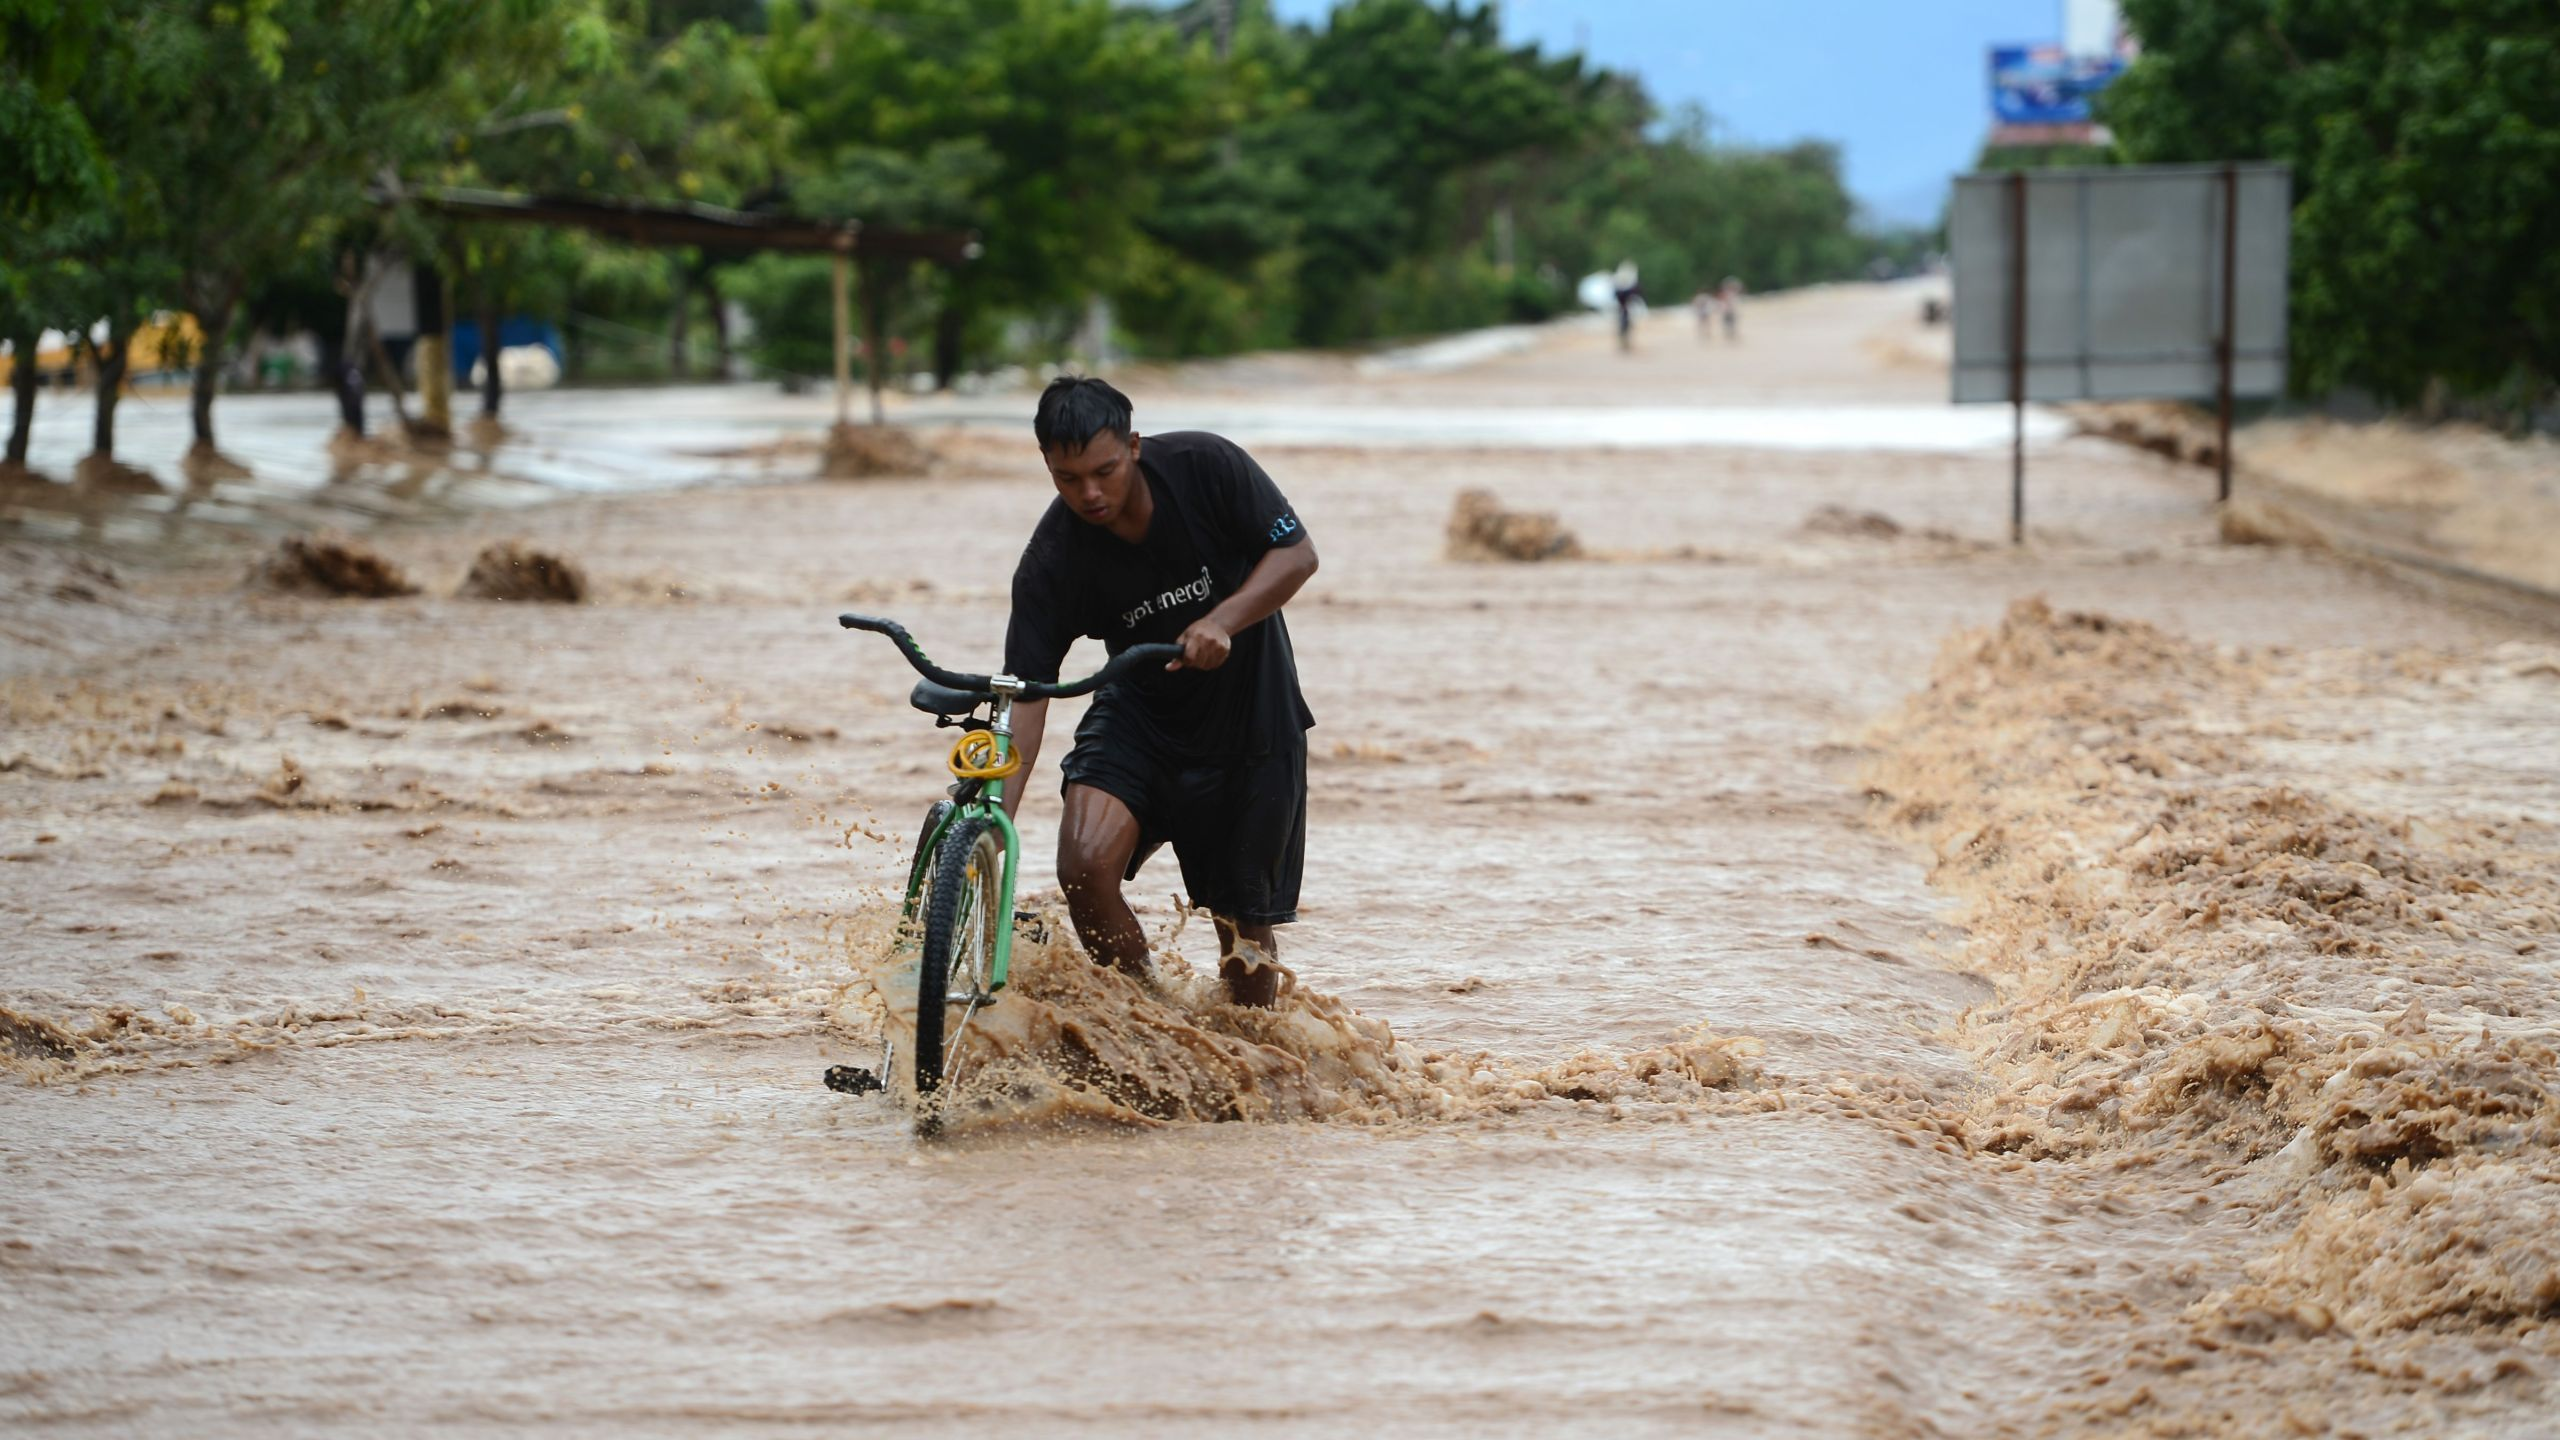 A man wades with his bike in a flooded street due to the heavy rains caused by Hurricane Eta, now degraded to a tropical storm, in El Progreso, department of Yoro, 260 kms north of Tegucigalpa, on Nov. 5, 2020. (Orlando SIERRA / AFP via Getty Images)